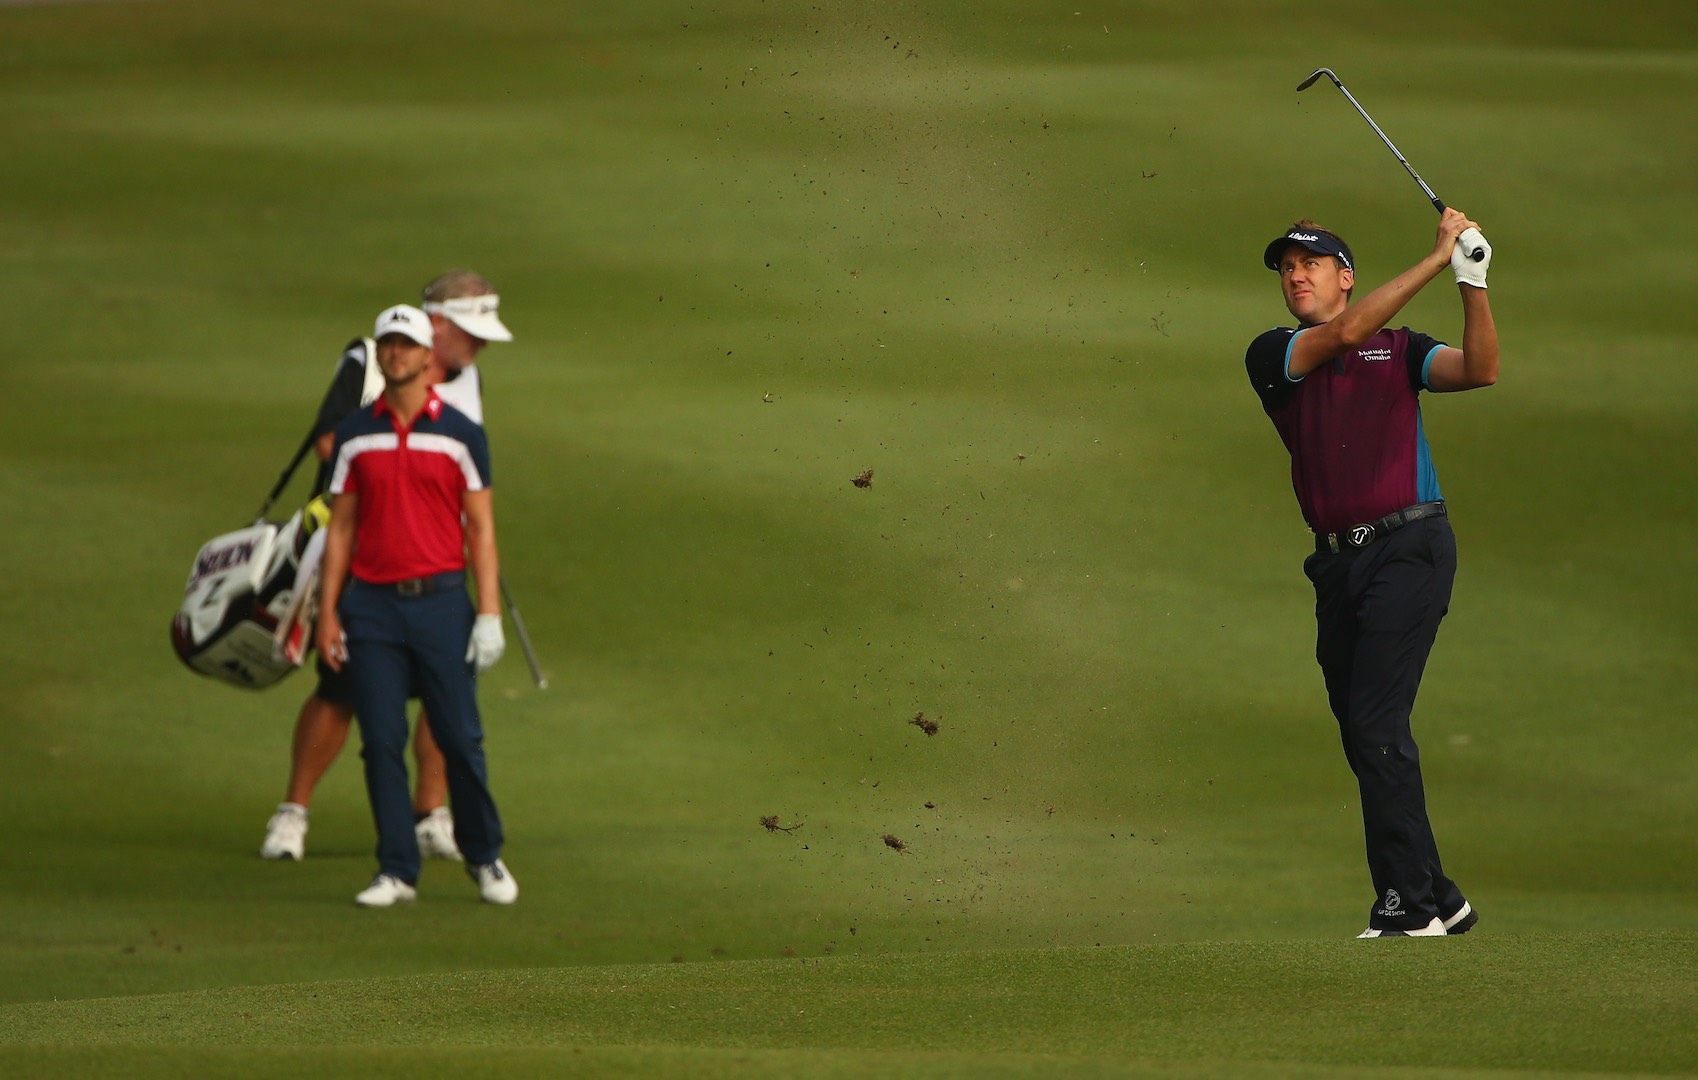 Rose & Poulter flying high in Hong Kong